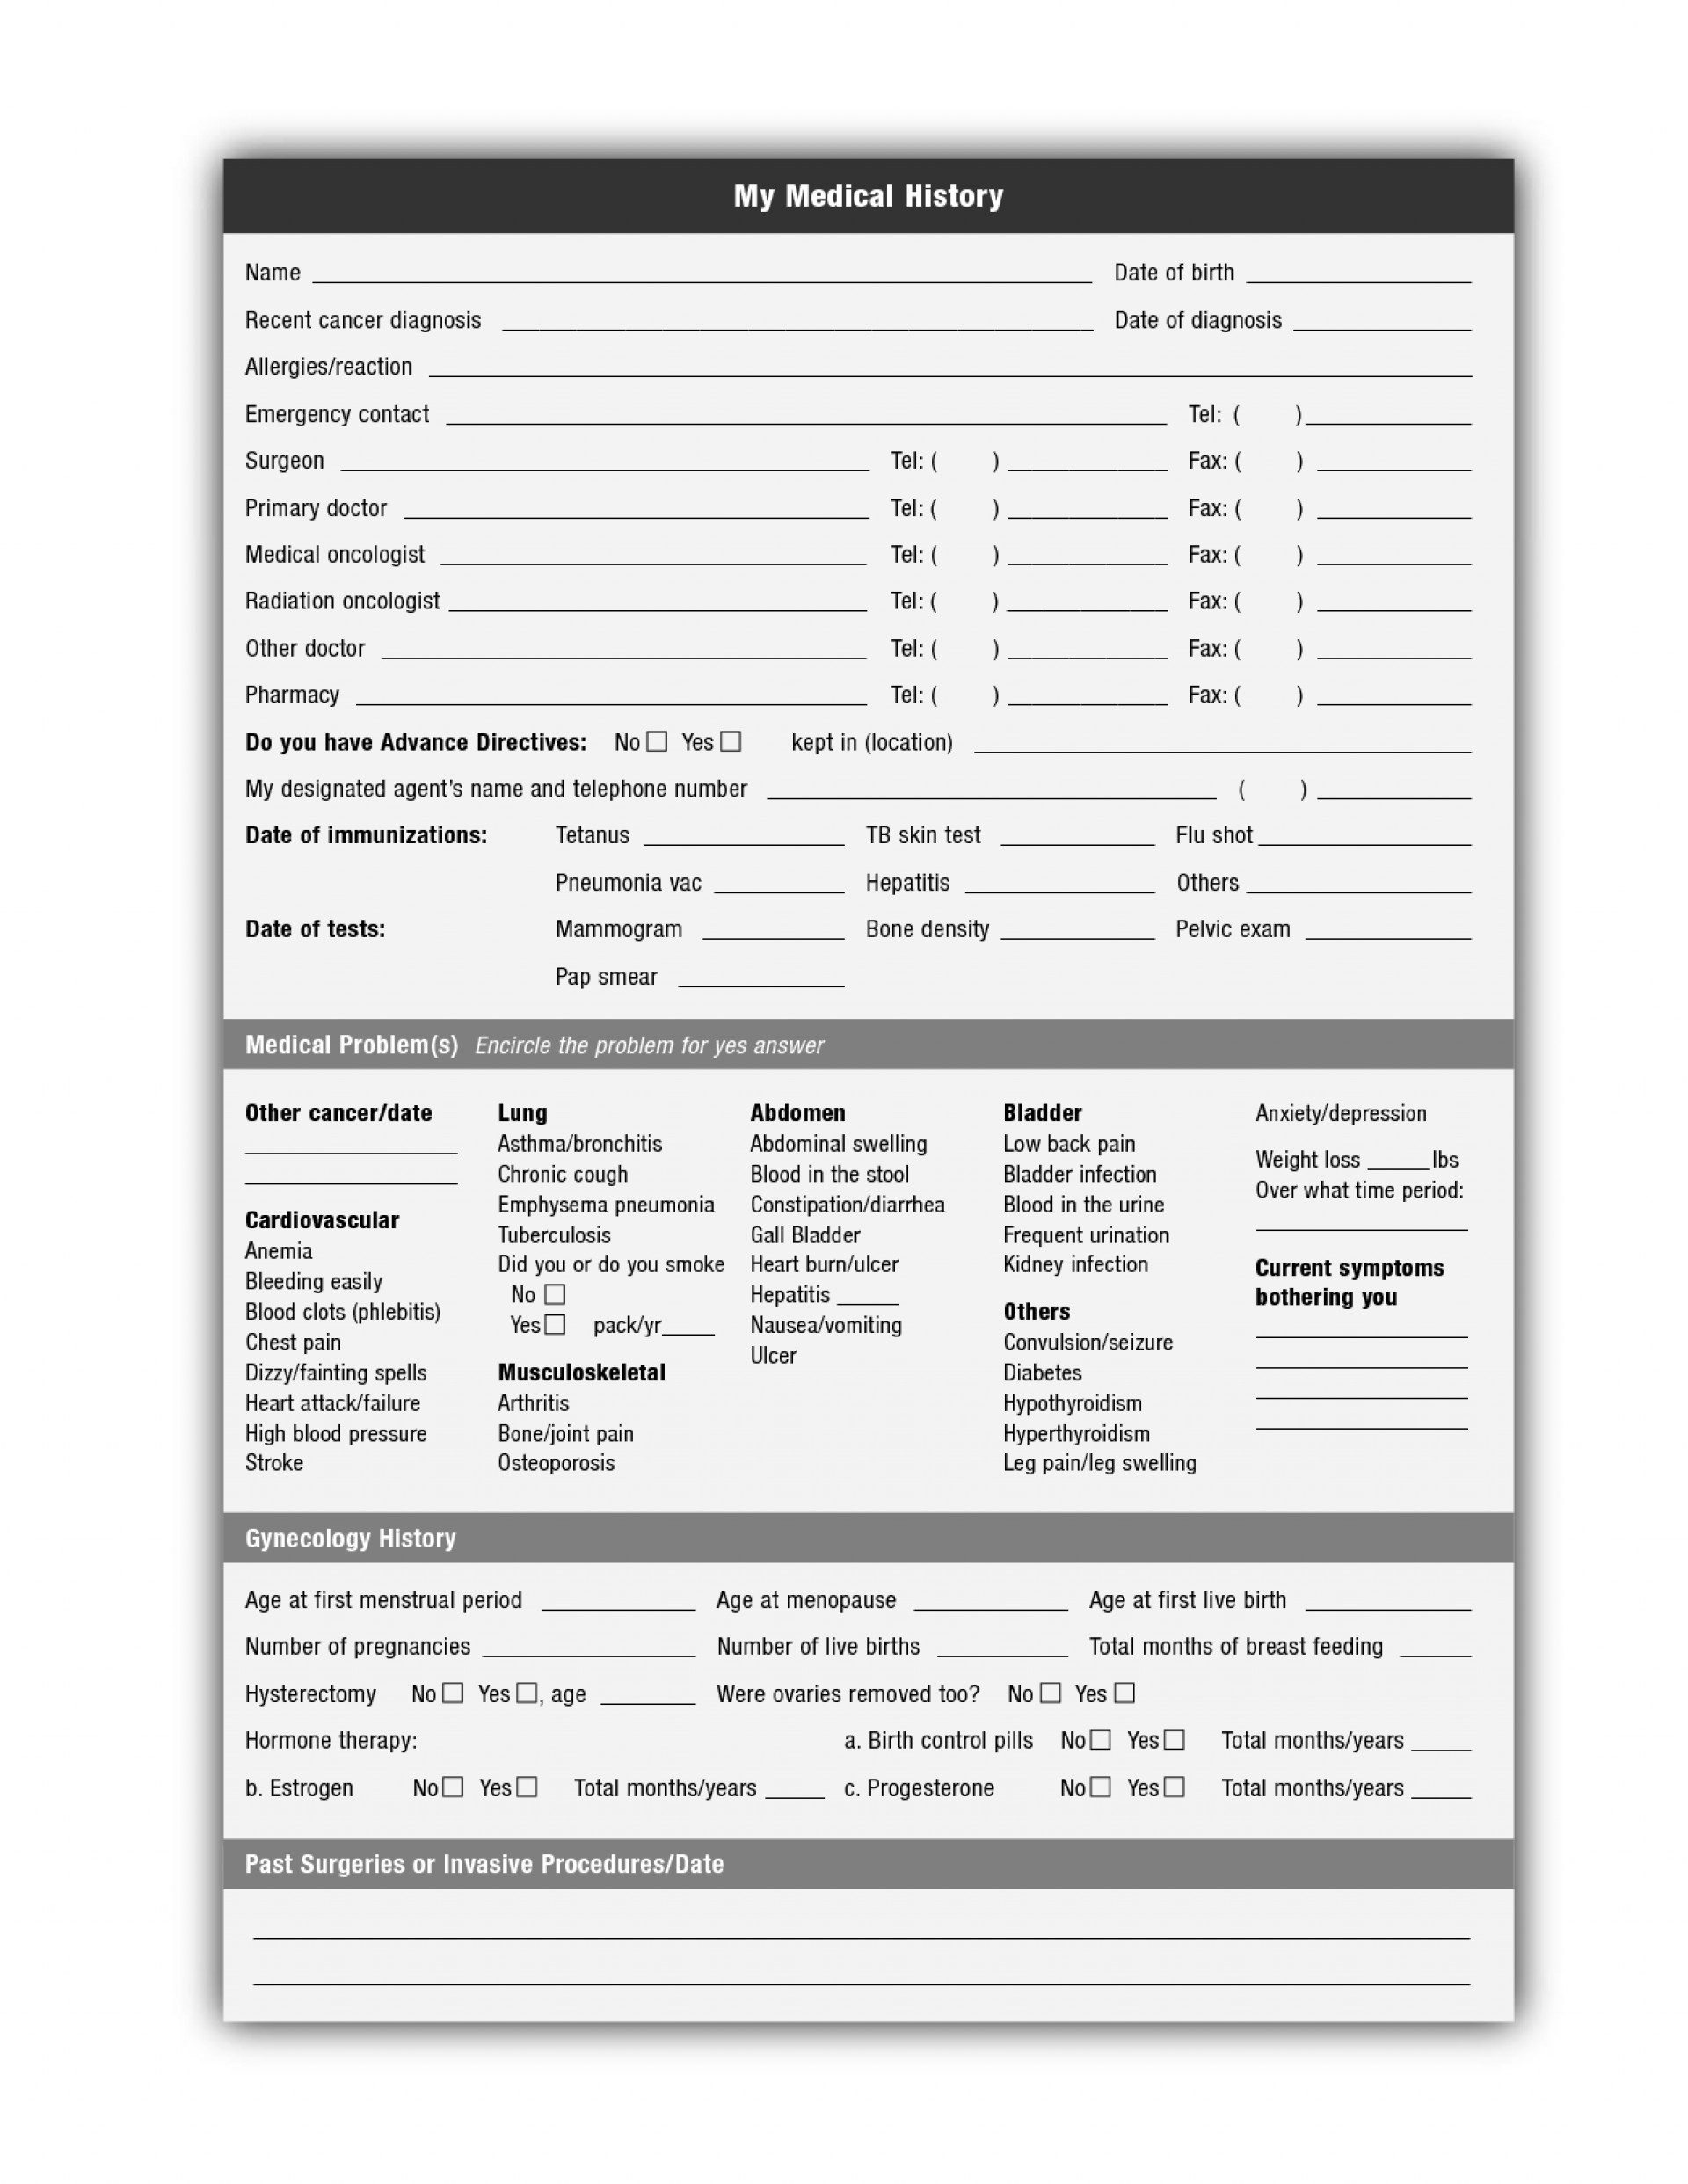 018 Template Ideas Free Printable Medical History Forms 142171 - Free Printable Personal Medical History Forms